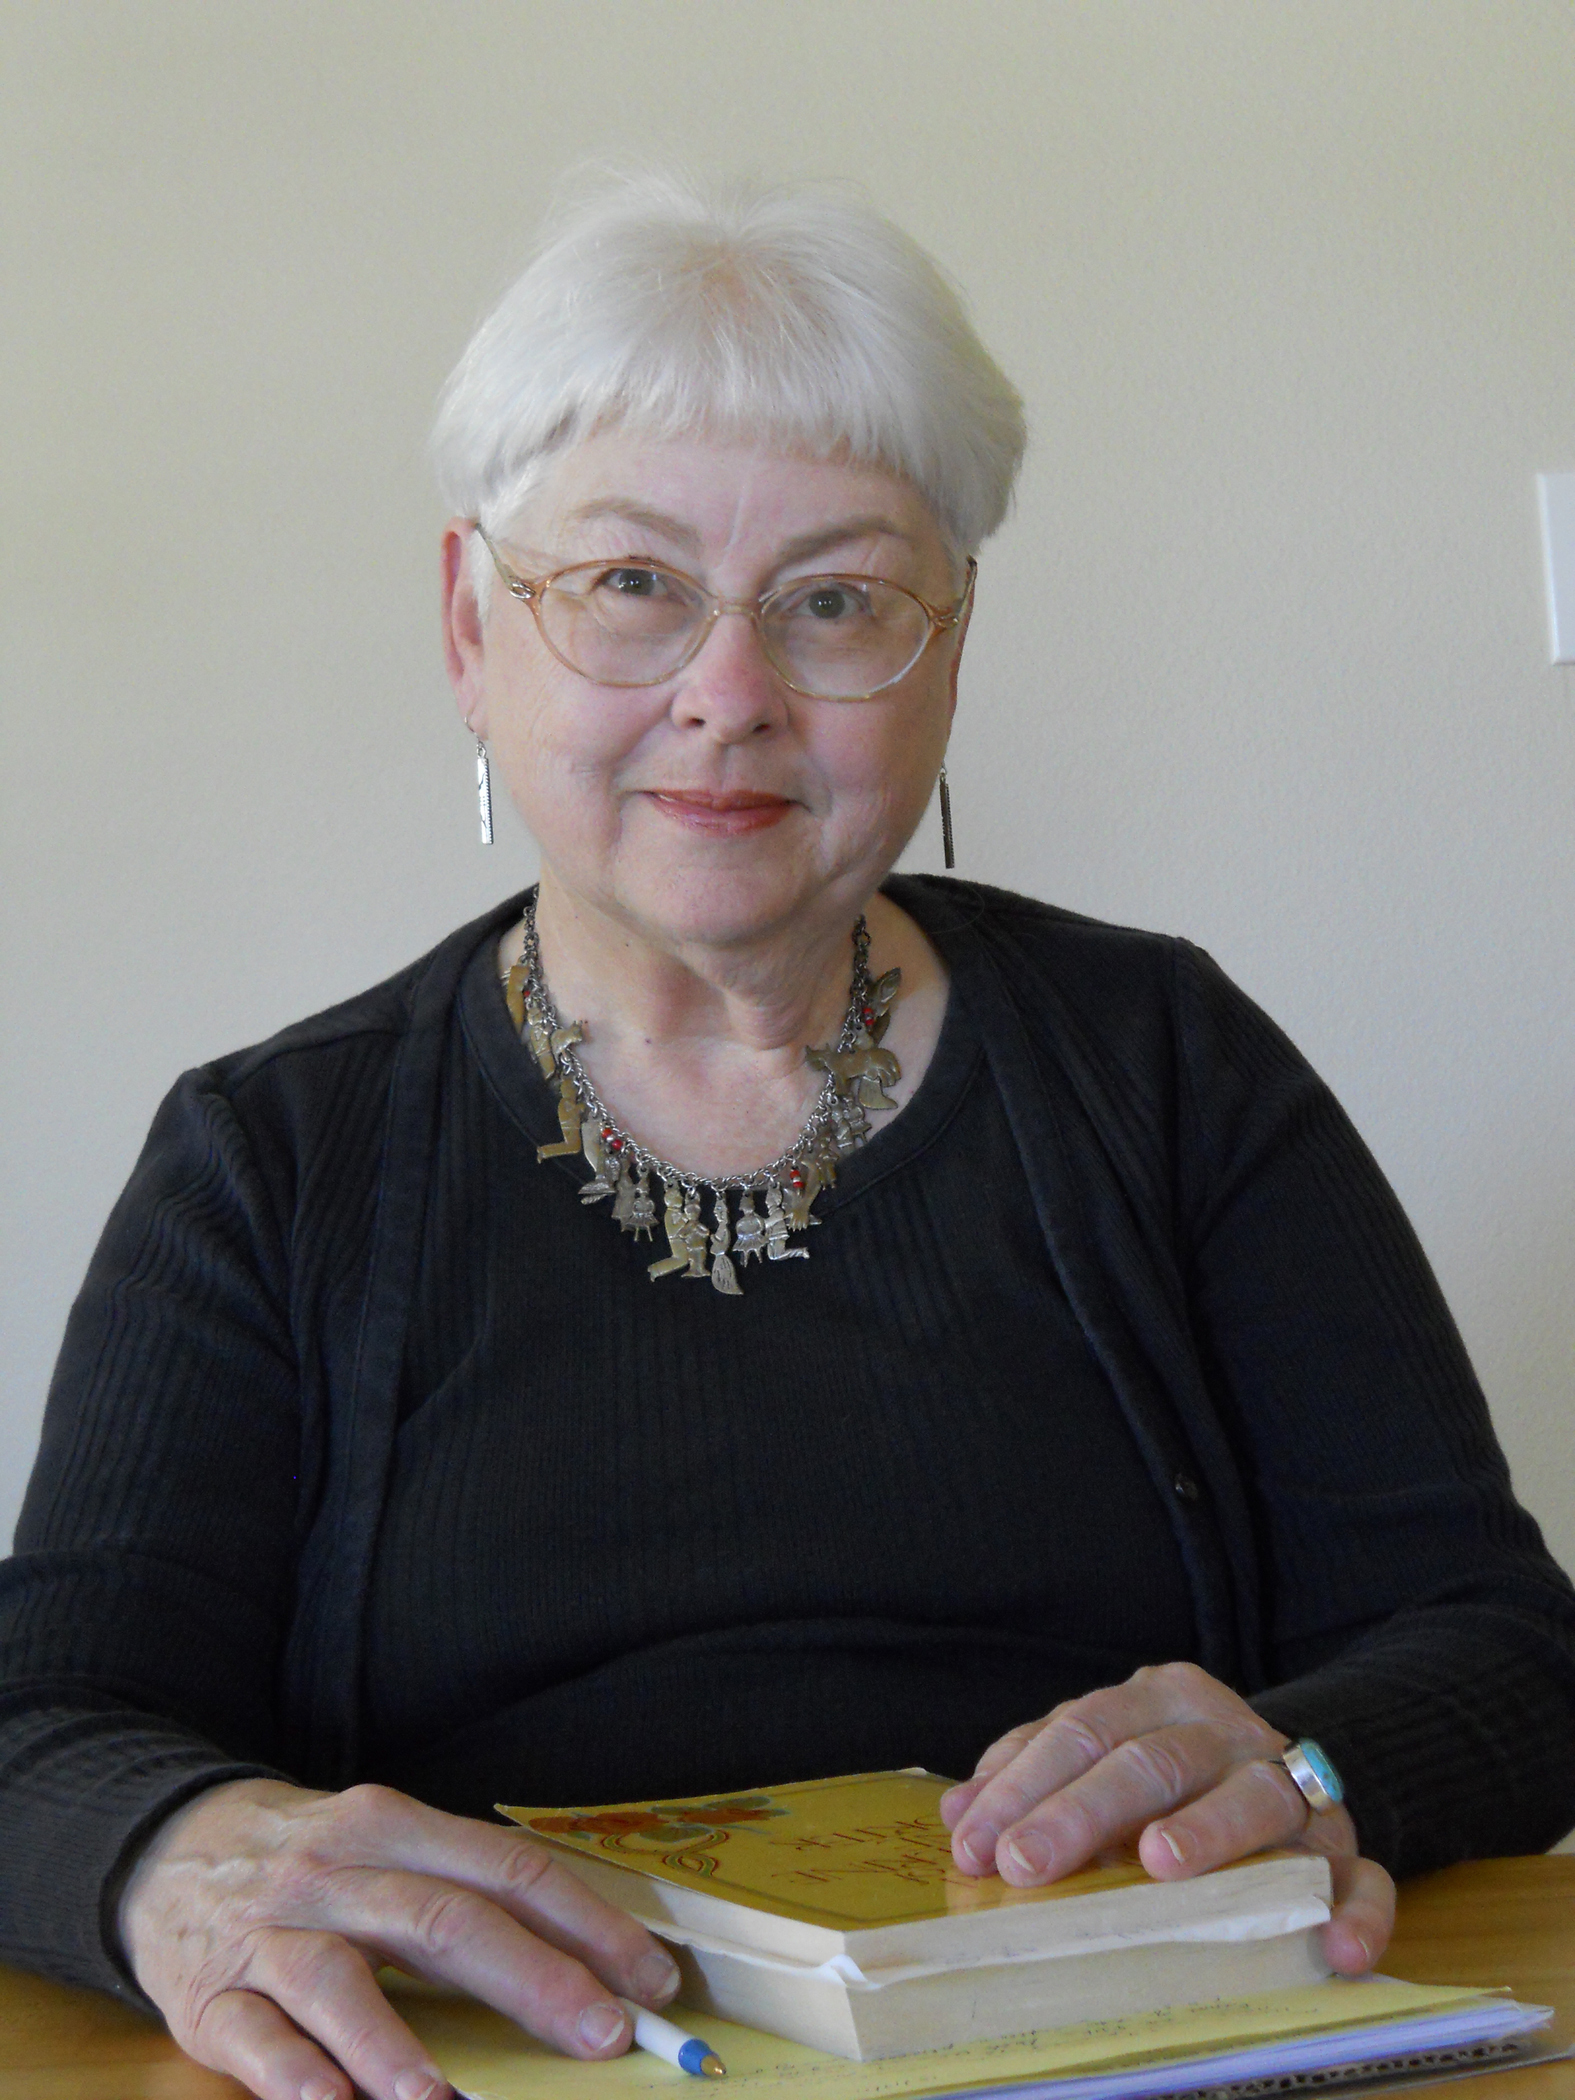 Janis Stout is professor emerita of English at Texas A&M University.